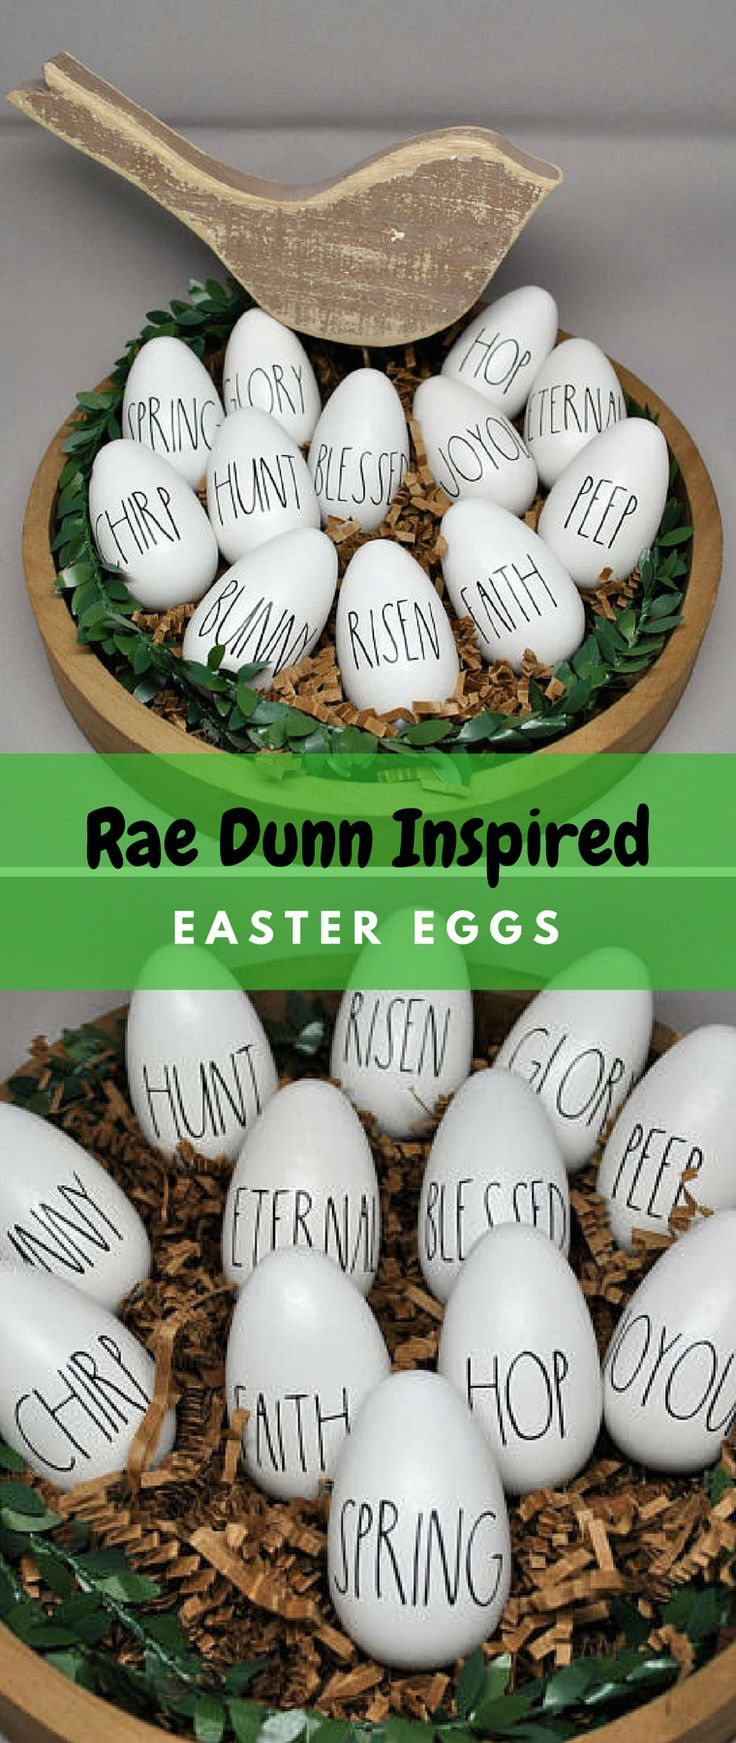 Decorate your home with these cute Rae Dunn inspired easter eggs. Great rustic farmhouse easter decor for your home. Click to see all the cute sayings available! #easter #eastereggs #raedunn #farmhouse #farmhousestyle #rustic #rusticdecor #homedecor #house #gifts #giftidea #etsy #etsyshop #ad